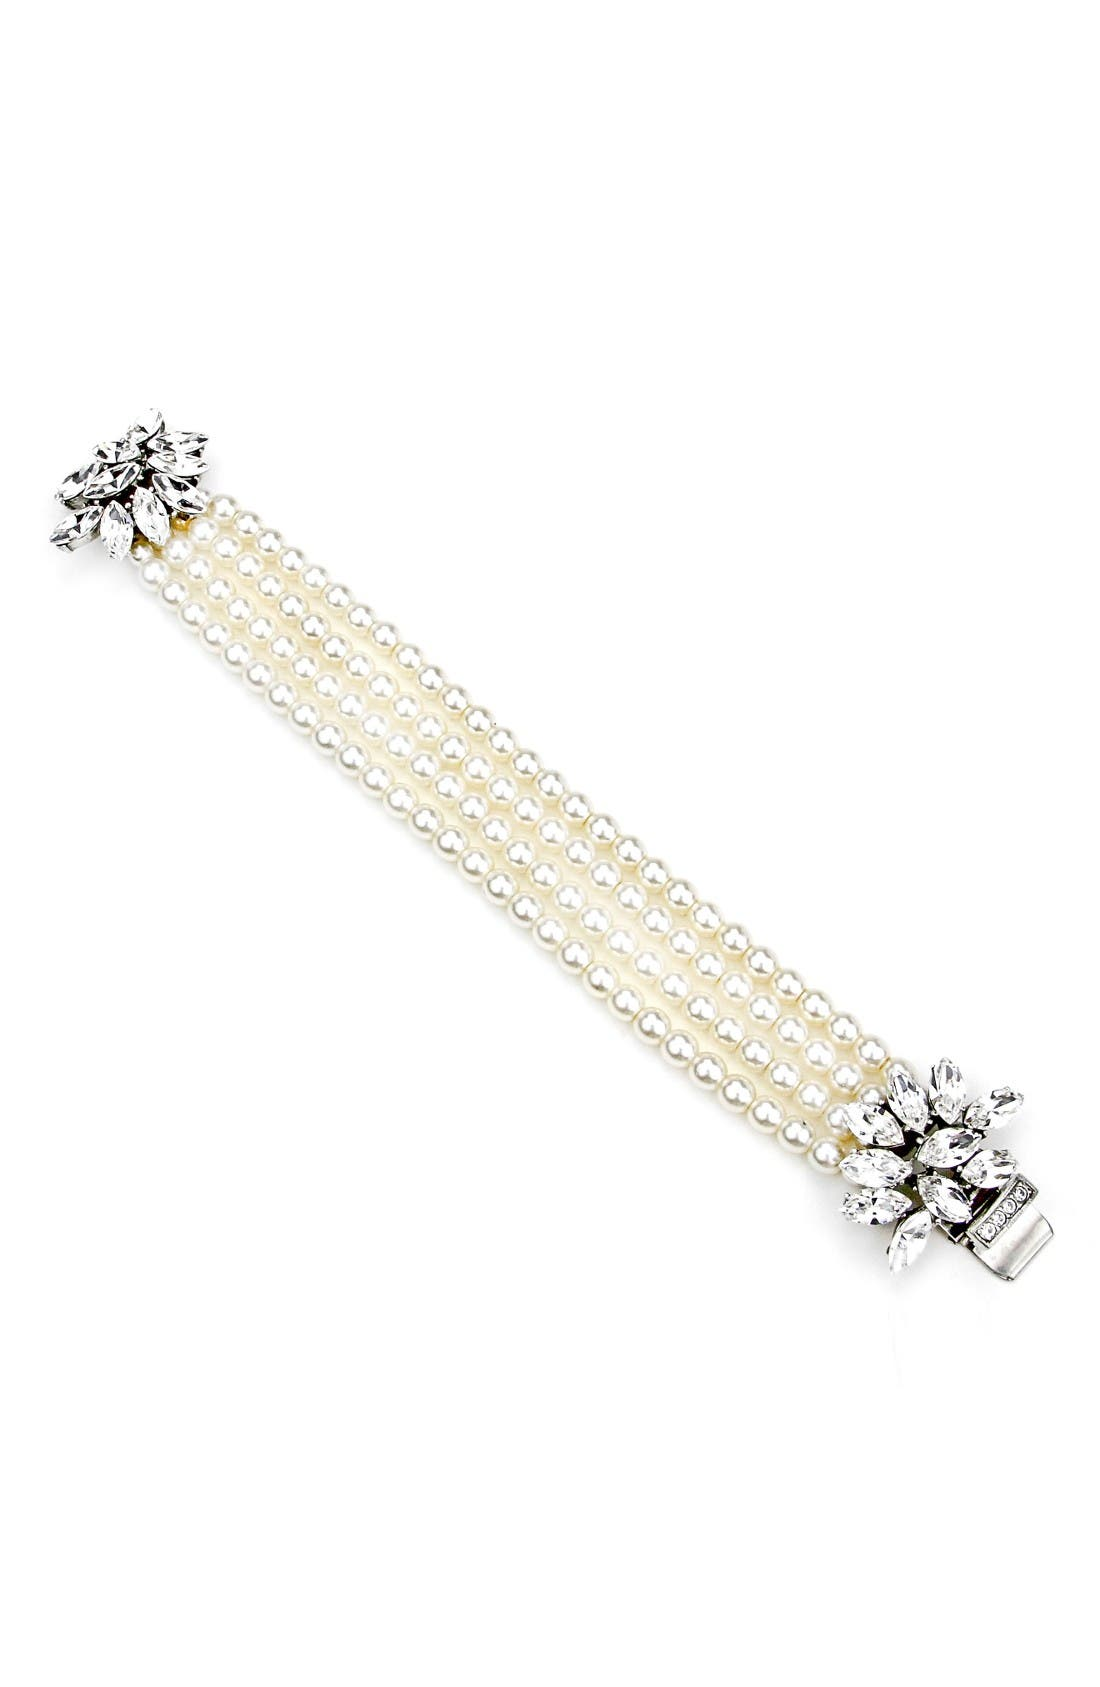 Cascading Crystals Faux Pearl Bracelet,                         Main,                         color, Ivory/ Clear